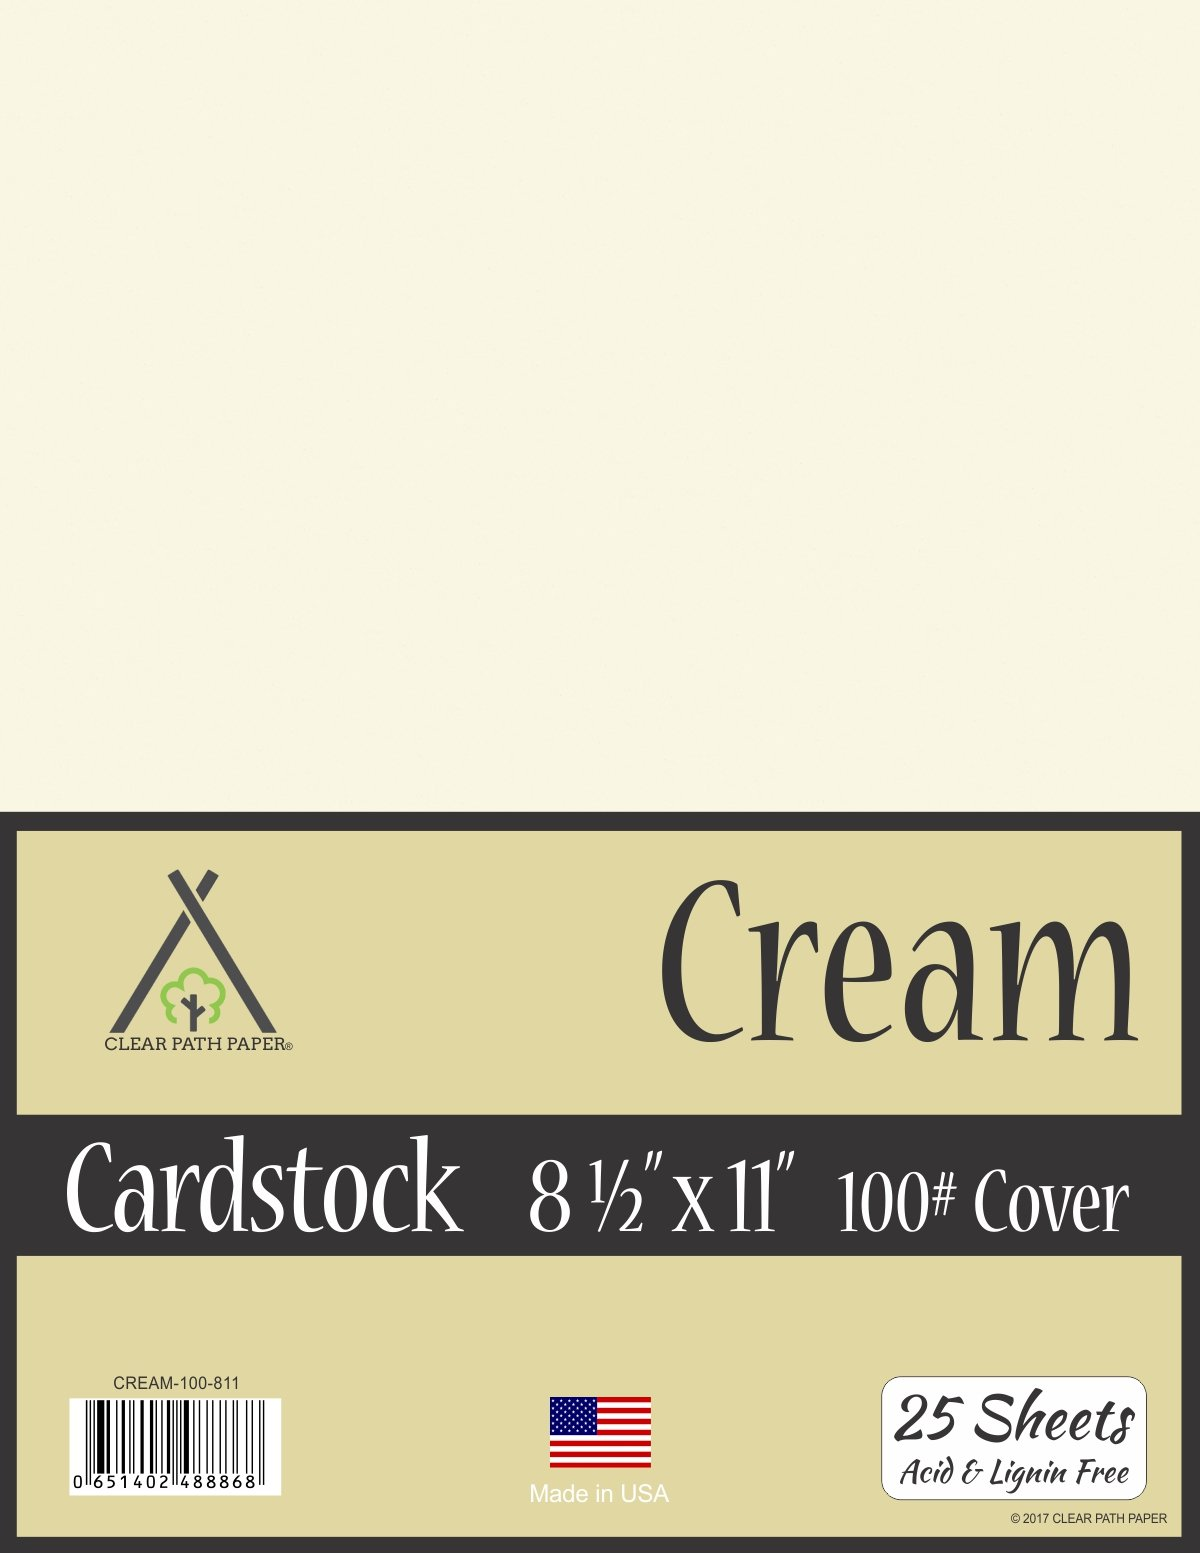 Cream White Cardstock - 8.5 x 11 inch - 100Lb Cover - 25 Sheets